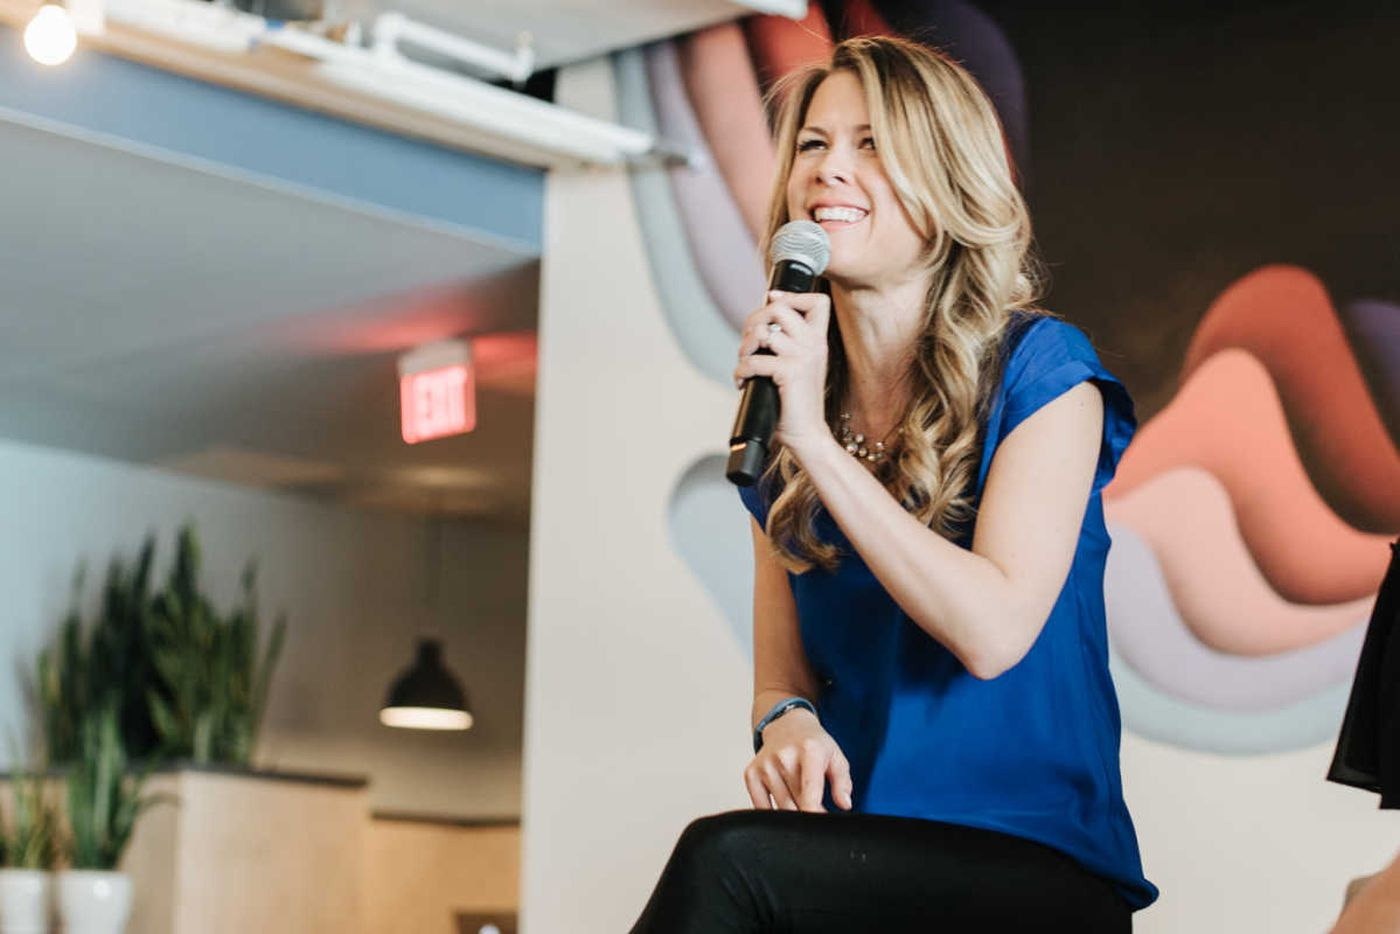 Dreamers // Doers aims to supercharge female entrepreneurs